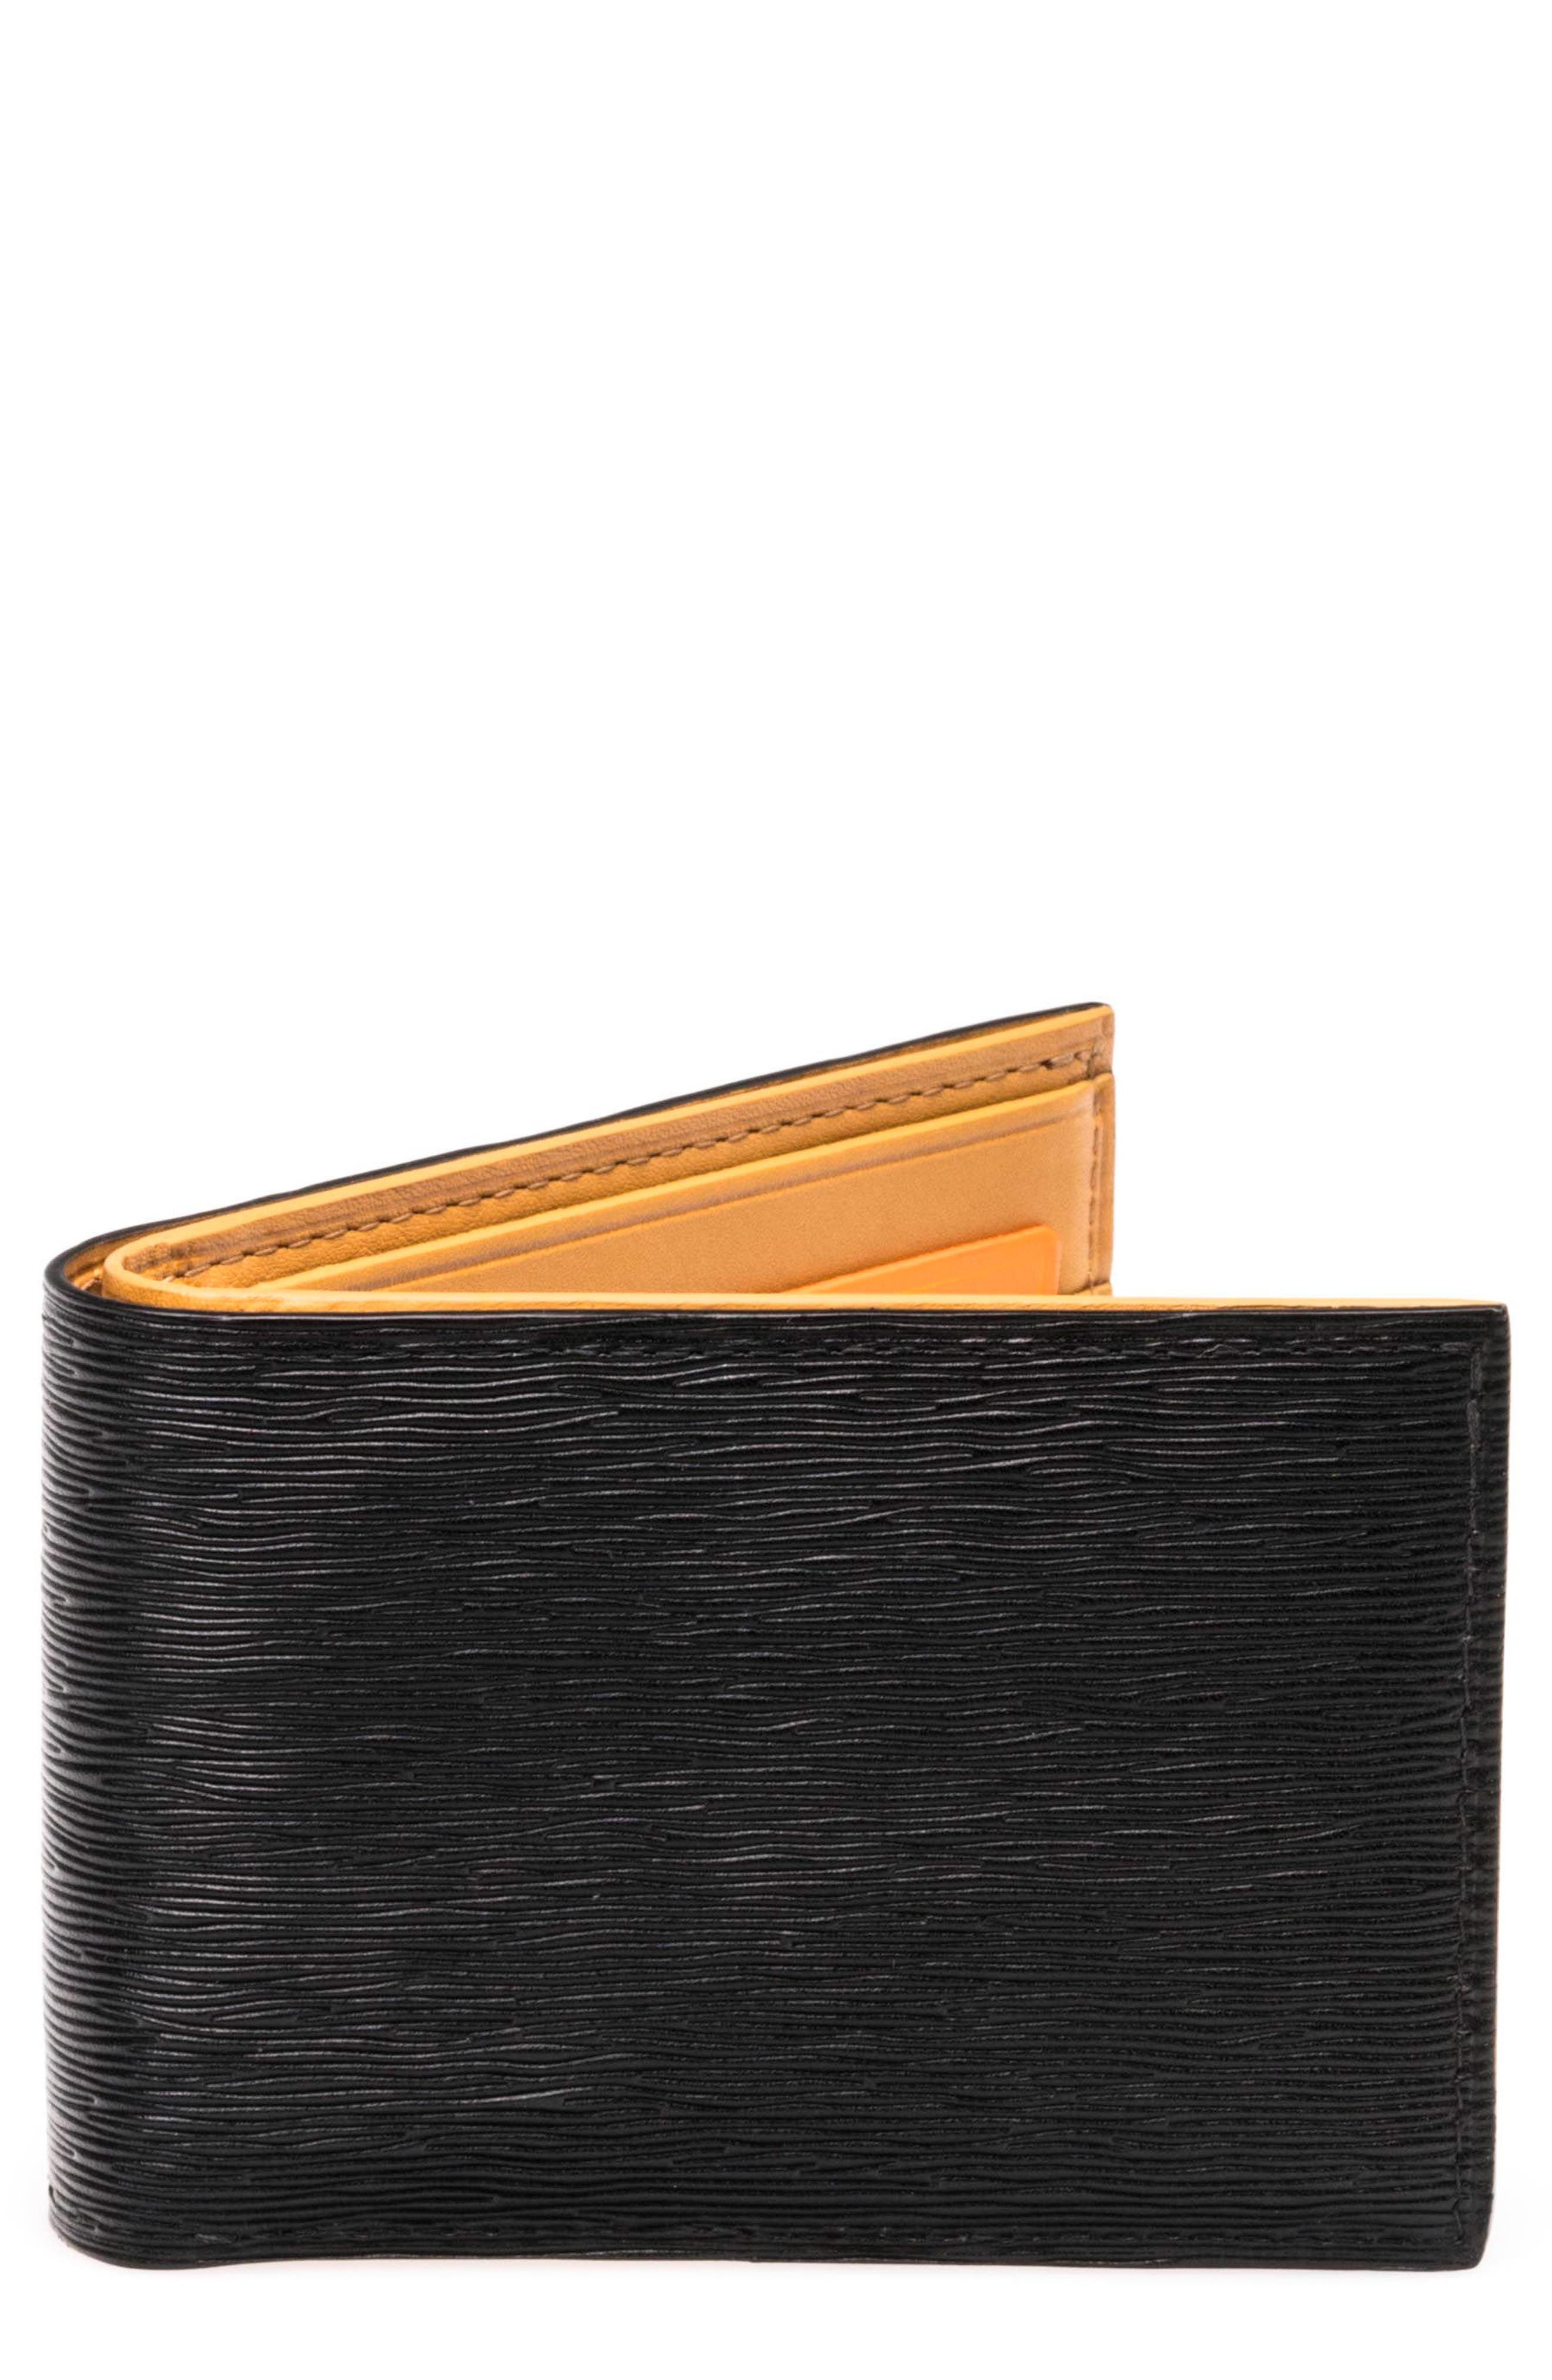 Slim Leather Bifold Wallet,                             Main thumbnail 1, color,                             001